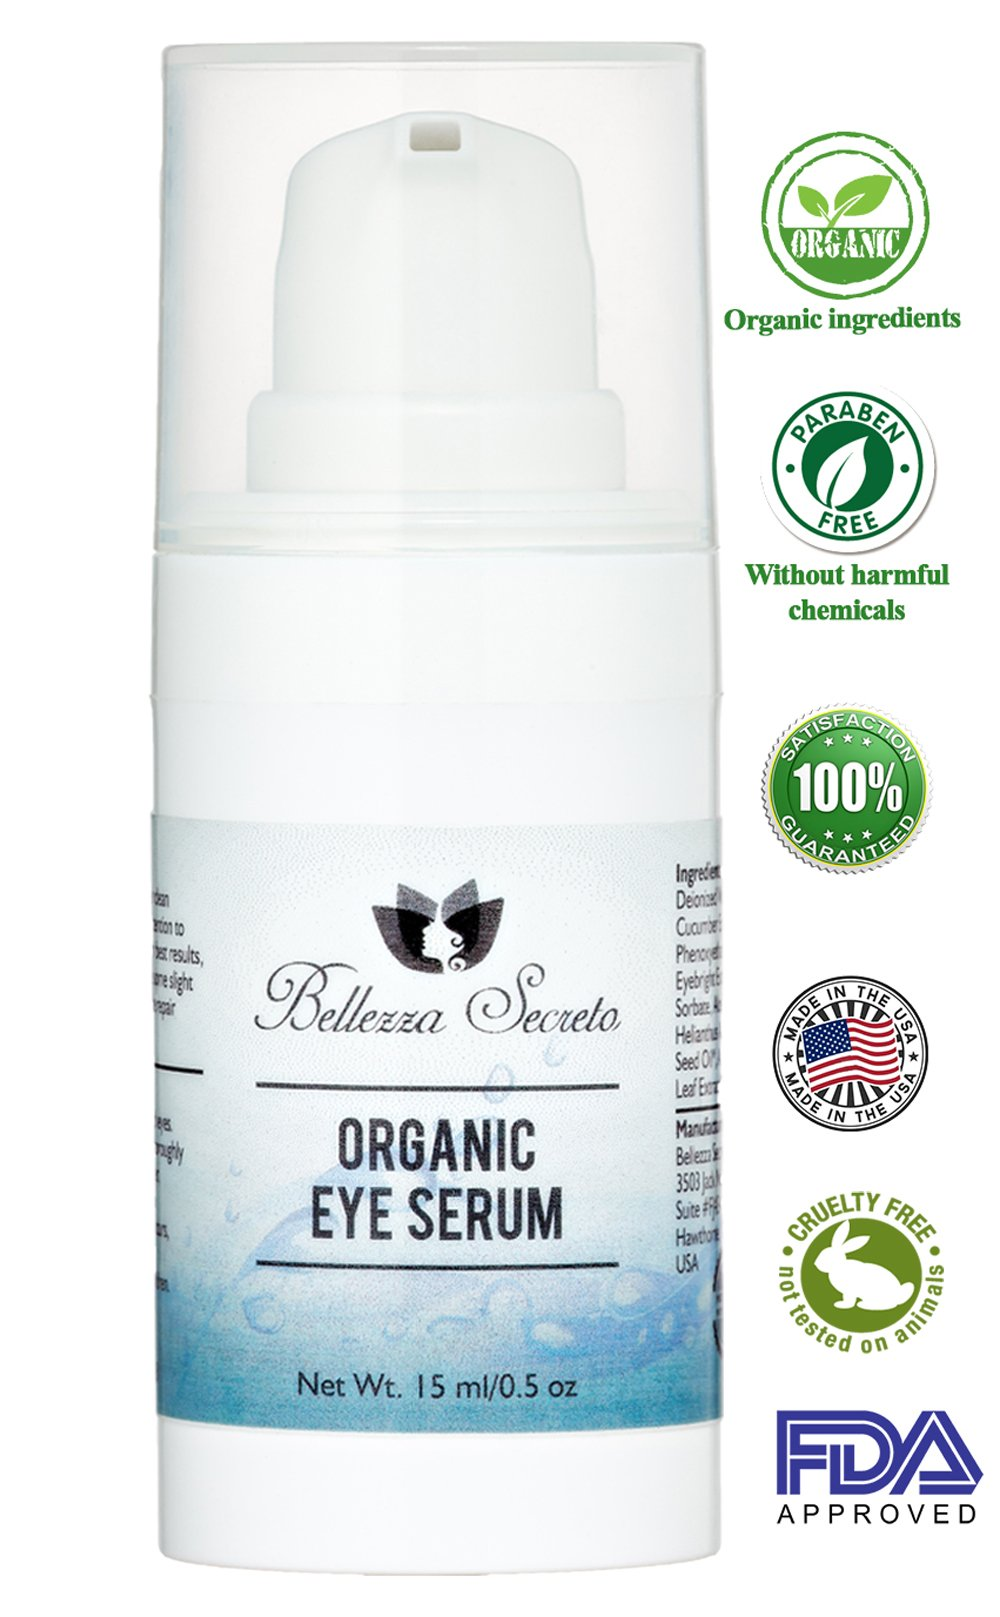 Organic Eye Serum - Retinol, hyaluronic acid- Enriched with Omega-6, Vitamin C & E and Essential Lipids - for Dark Circles and Puffiness, Wrinkle, Fine Lines, Bags, Made in the USA, FDA certified